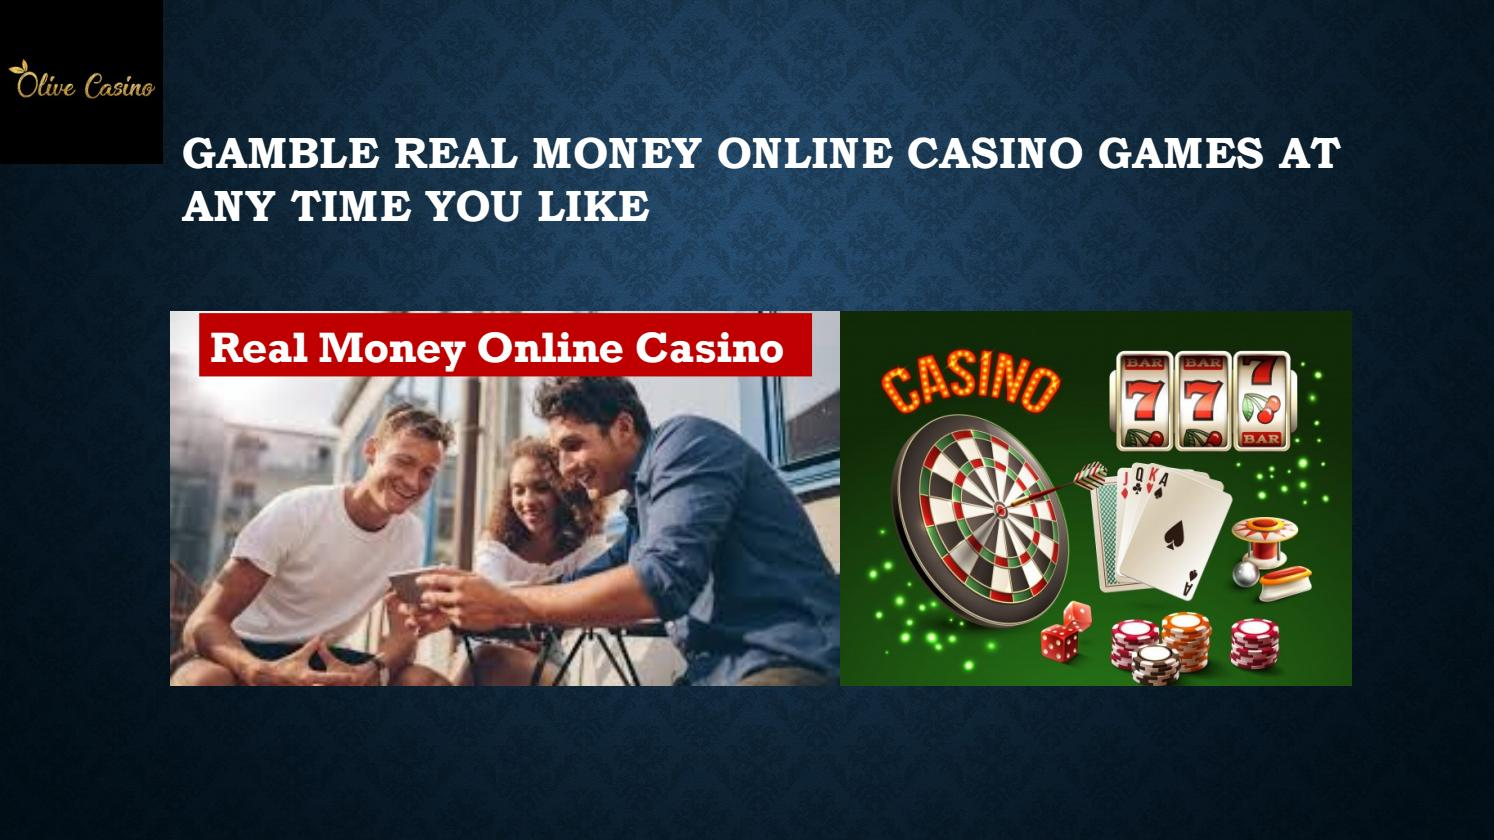 Gamble Real Money Online Casino Games At Any Time You Like By Olivecasino Issuu